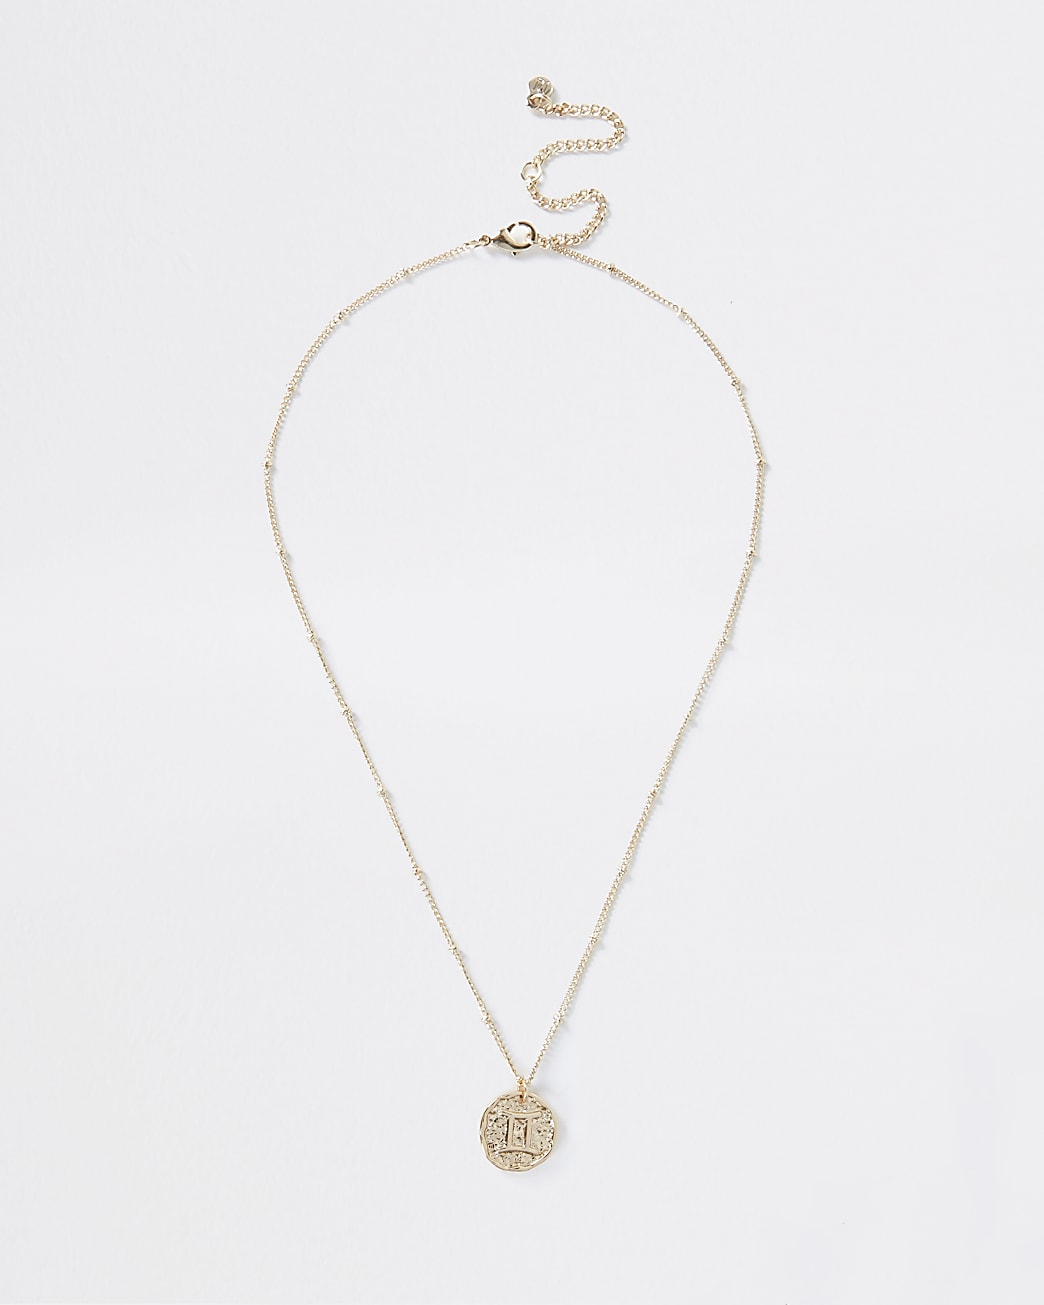 Gold Gemini horoscope coin necklace